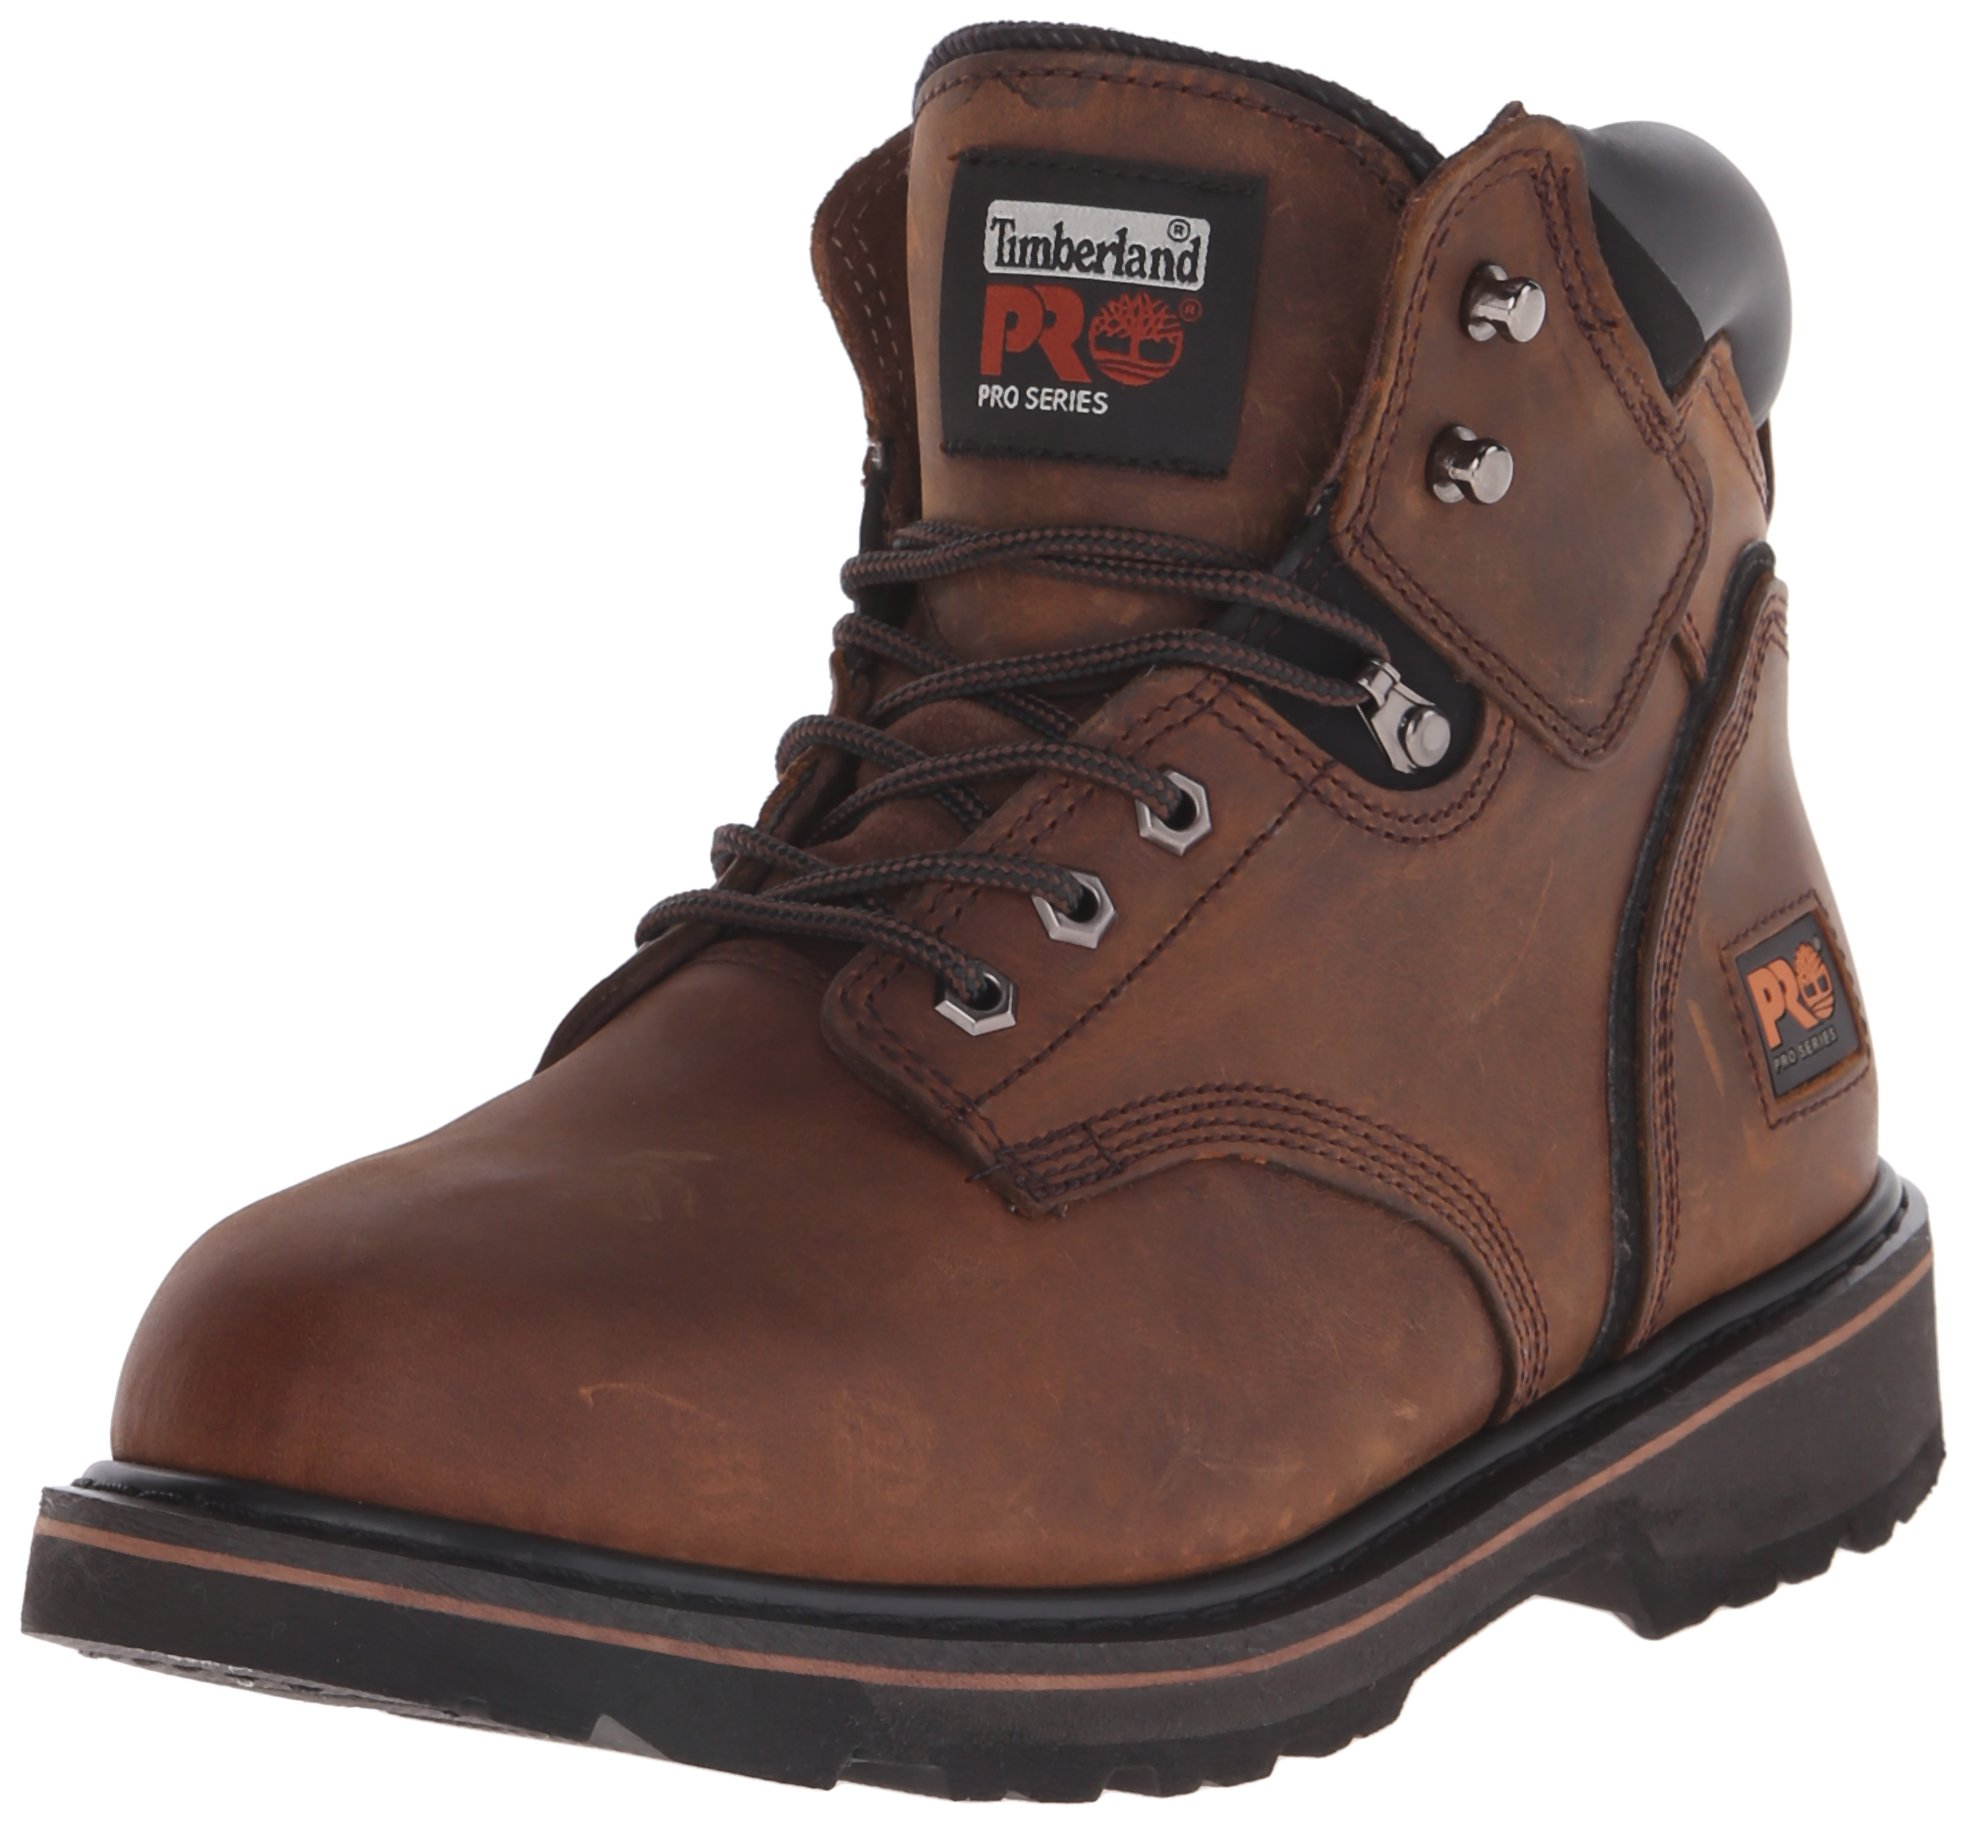 Timberland Men's Pit Boss 6'' Soft Toe Work Shoes, Gaucho Oiled Full Grain,10 M US by Timberland